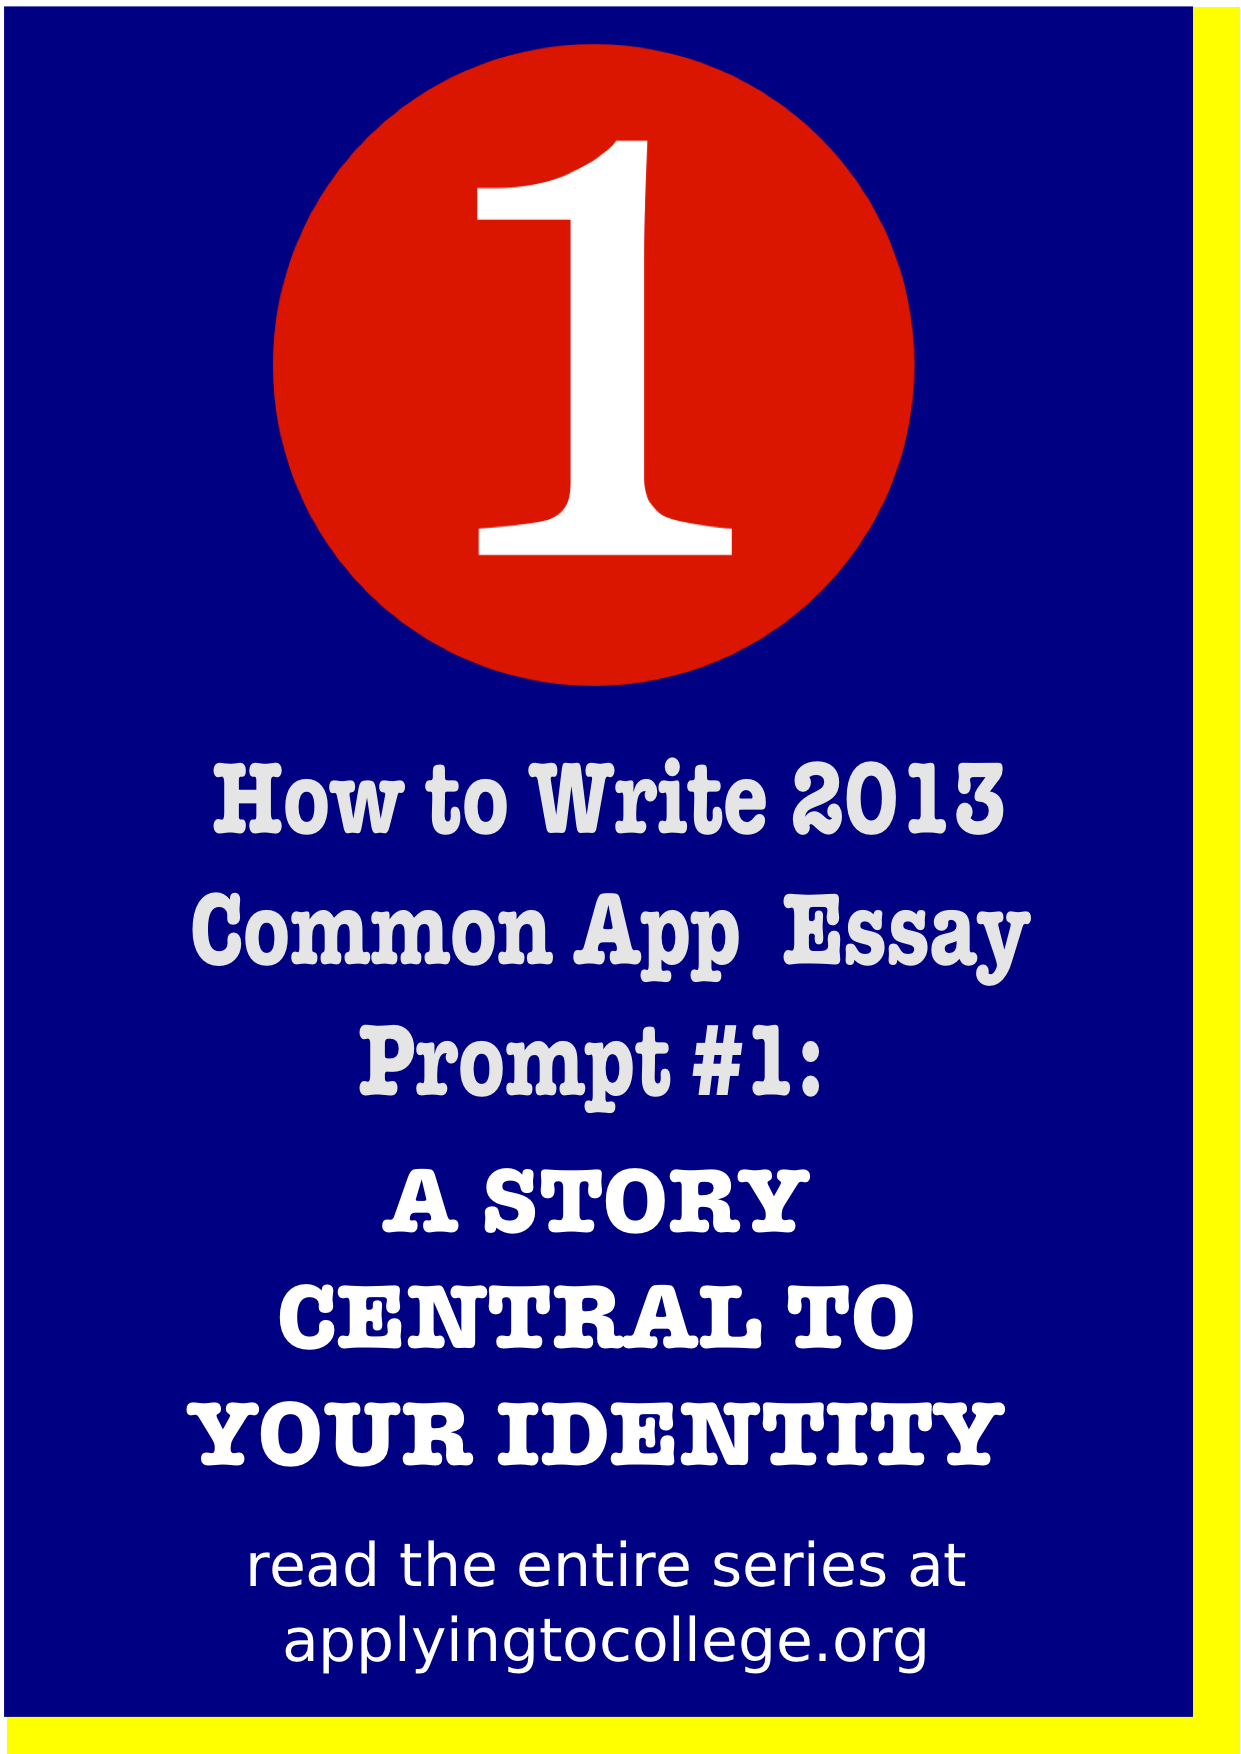 June 1, 2013 – SAT Essay Prompts